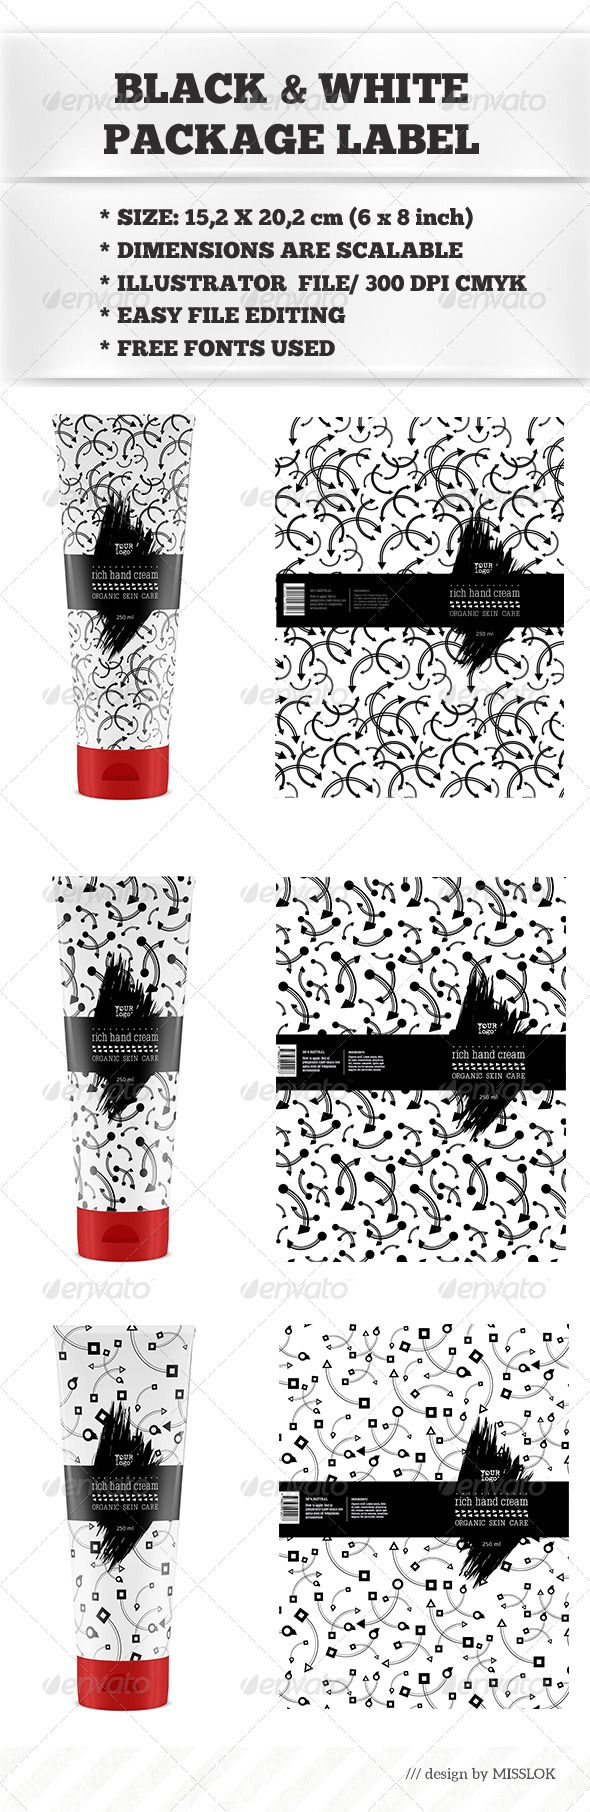 Black & White Package Labels | Print templates, Template and Graphic ...